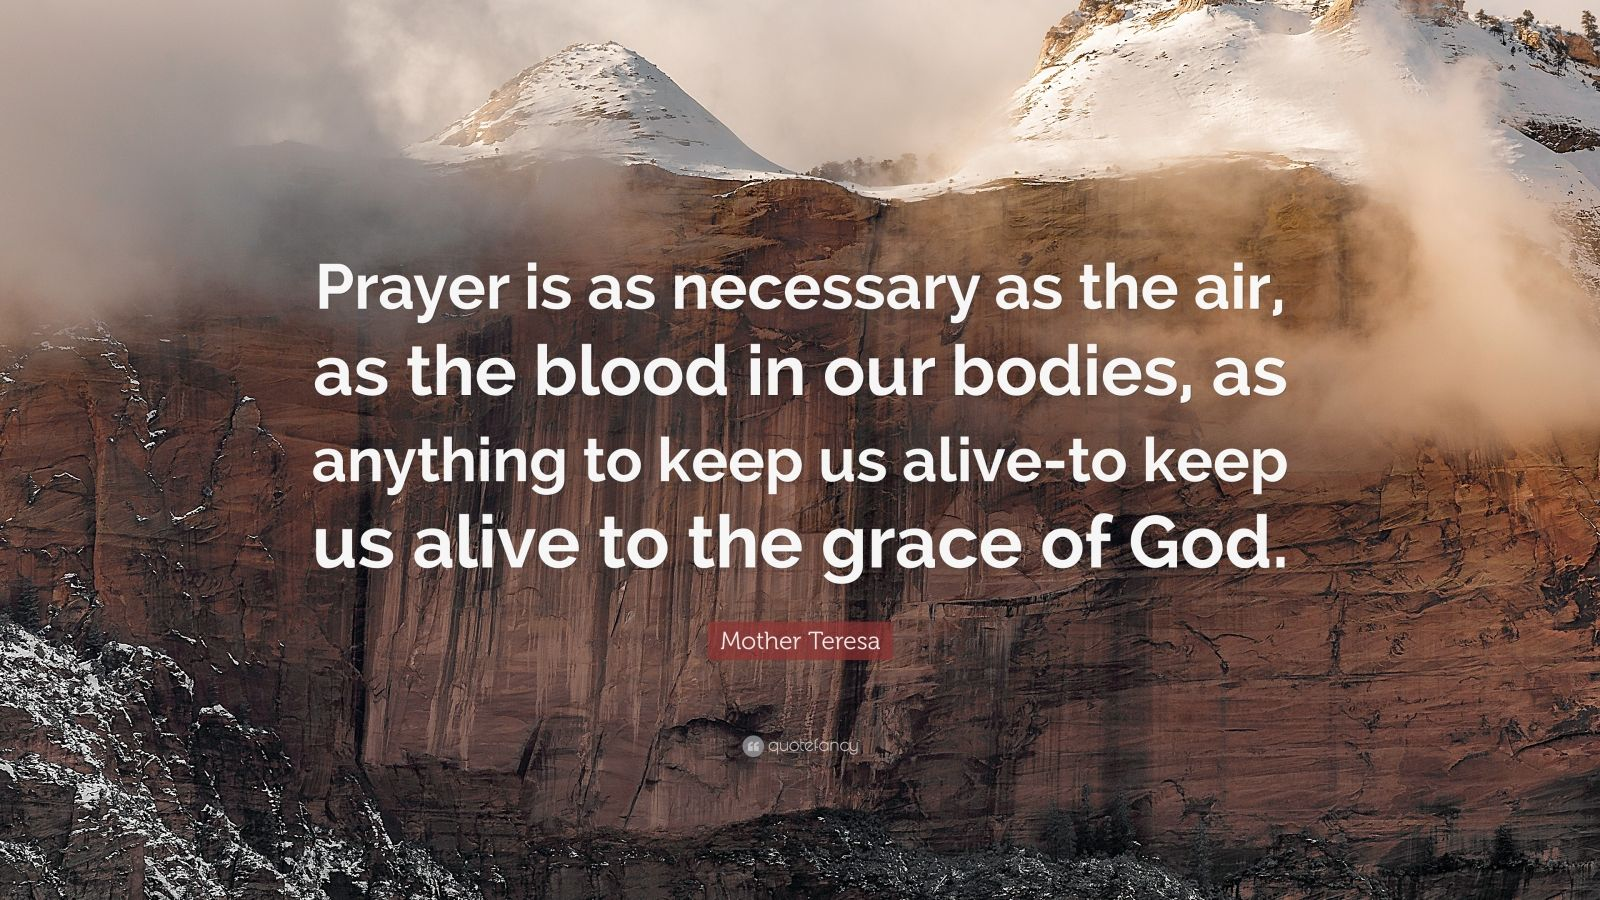 """Mother Teresa Quote: """"Prayer is as necessary as the air, as the blood in our bodies, as anything to keep us alive-to keep us alive to the grace of God."""""""